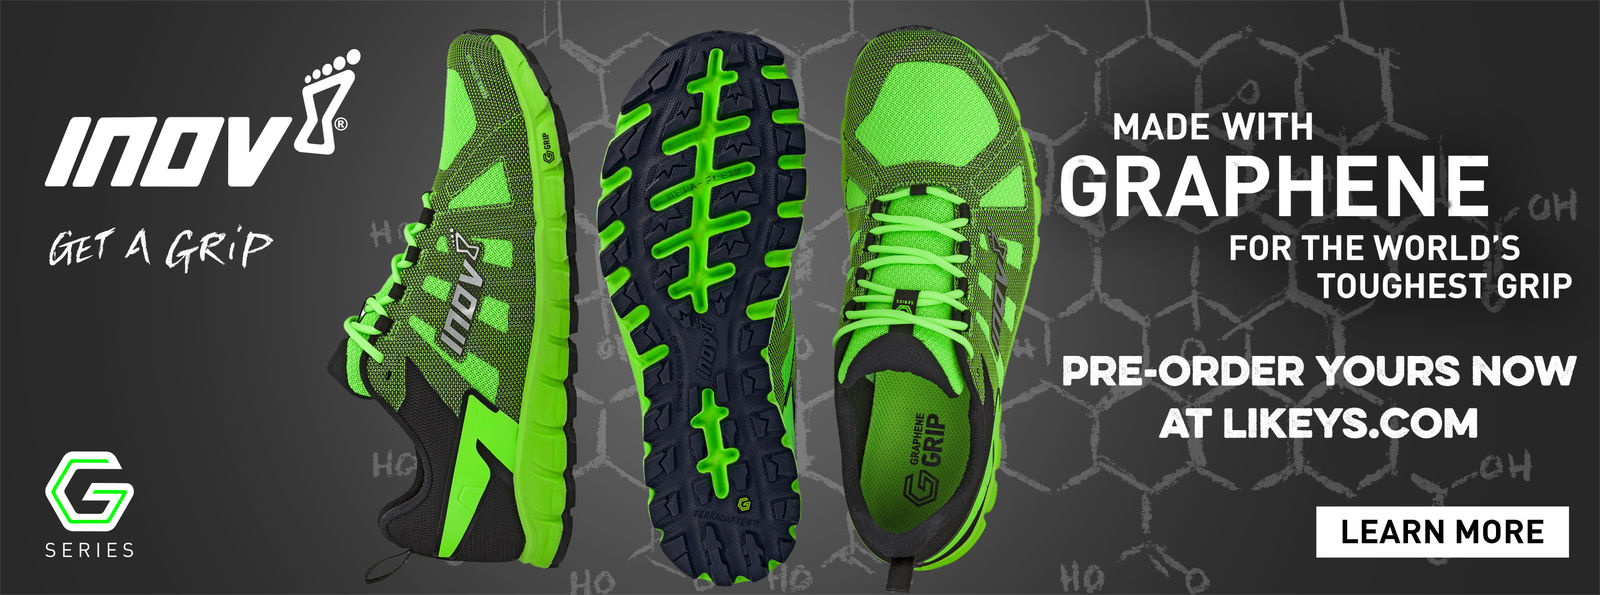 pre-order your pair of Inov-8 Graphene Terra Ultra 260 now